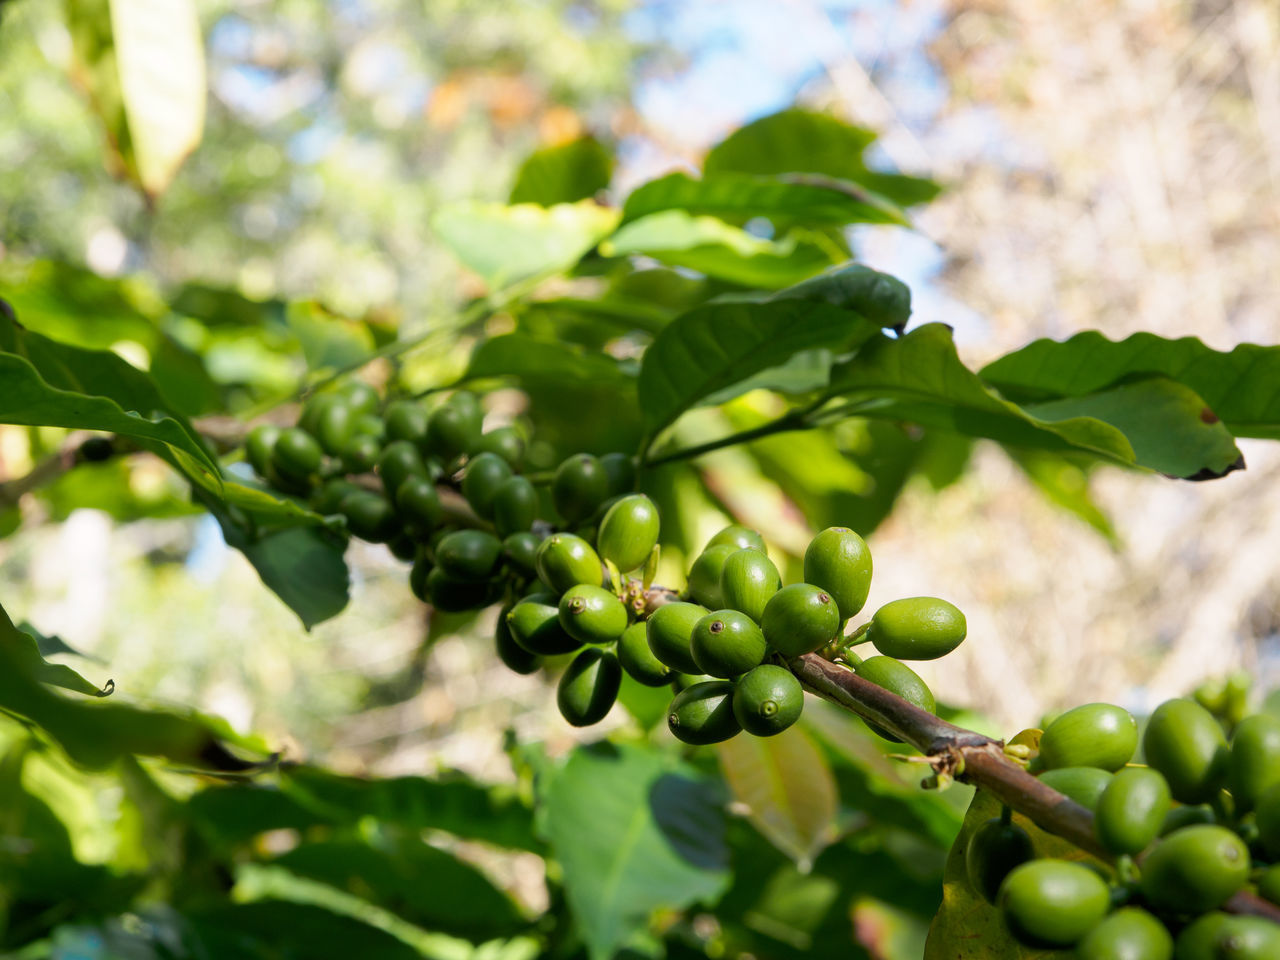 Green coffee beans Beans Coffee Coffee Beans Drink Fruit Green Green Color Growth Leaf Nature Organic Plant Shrub